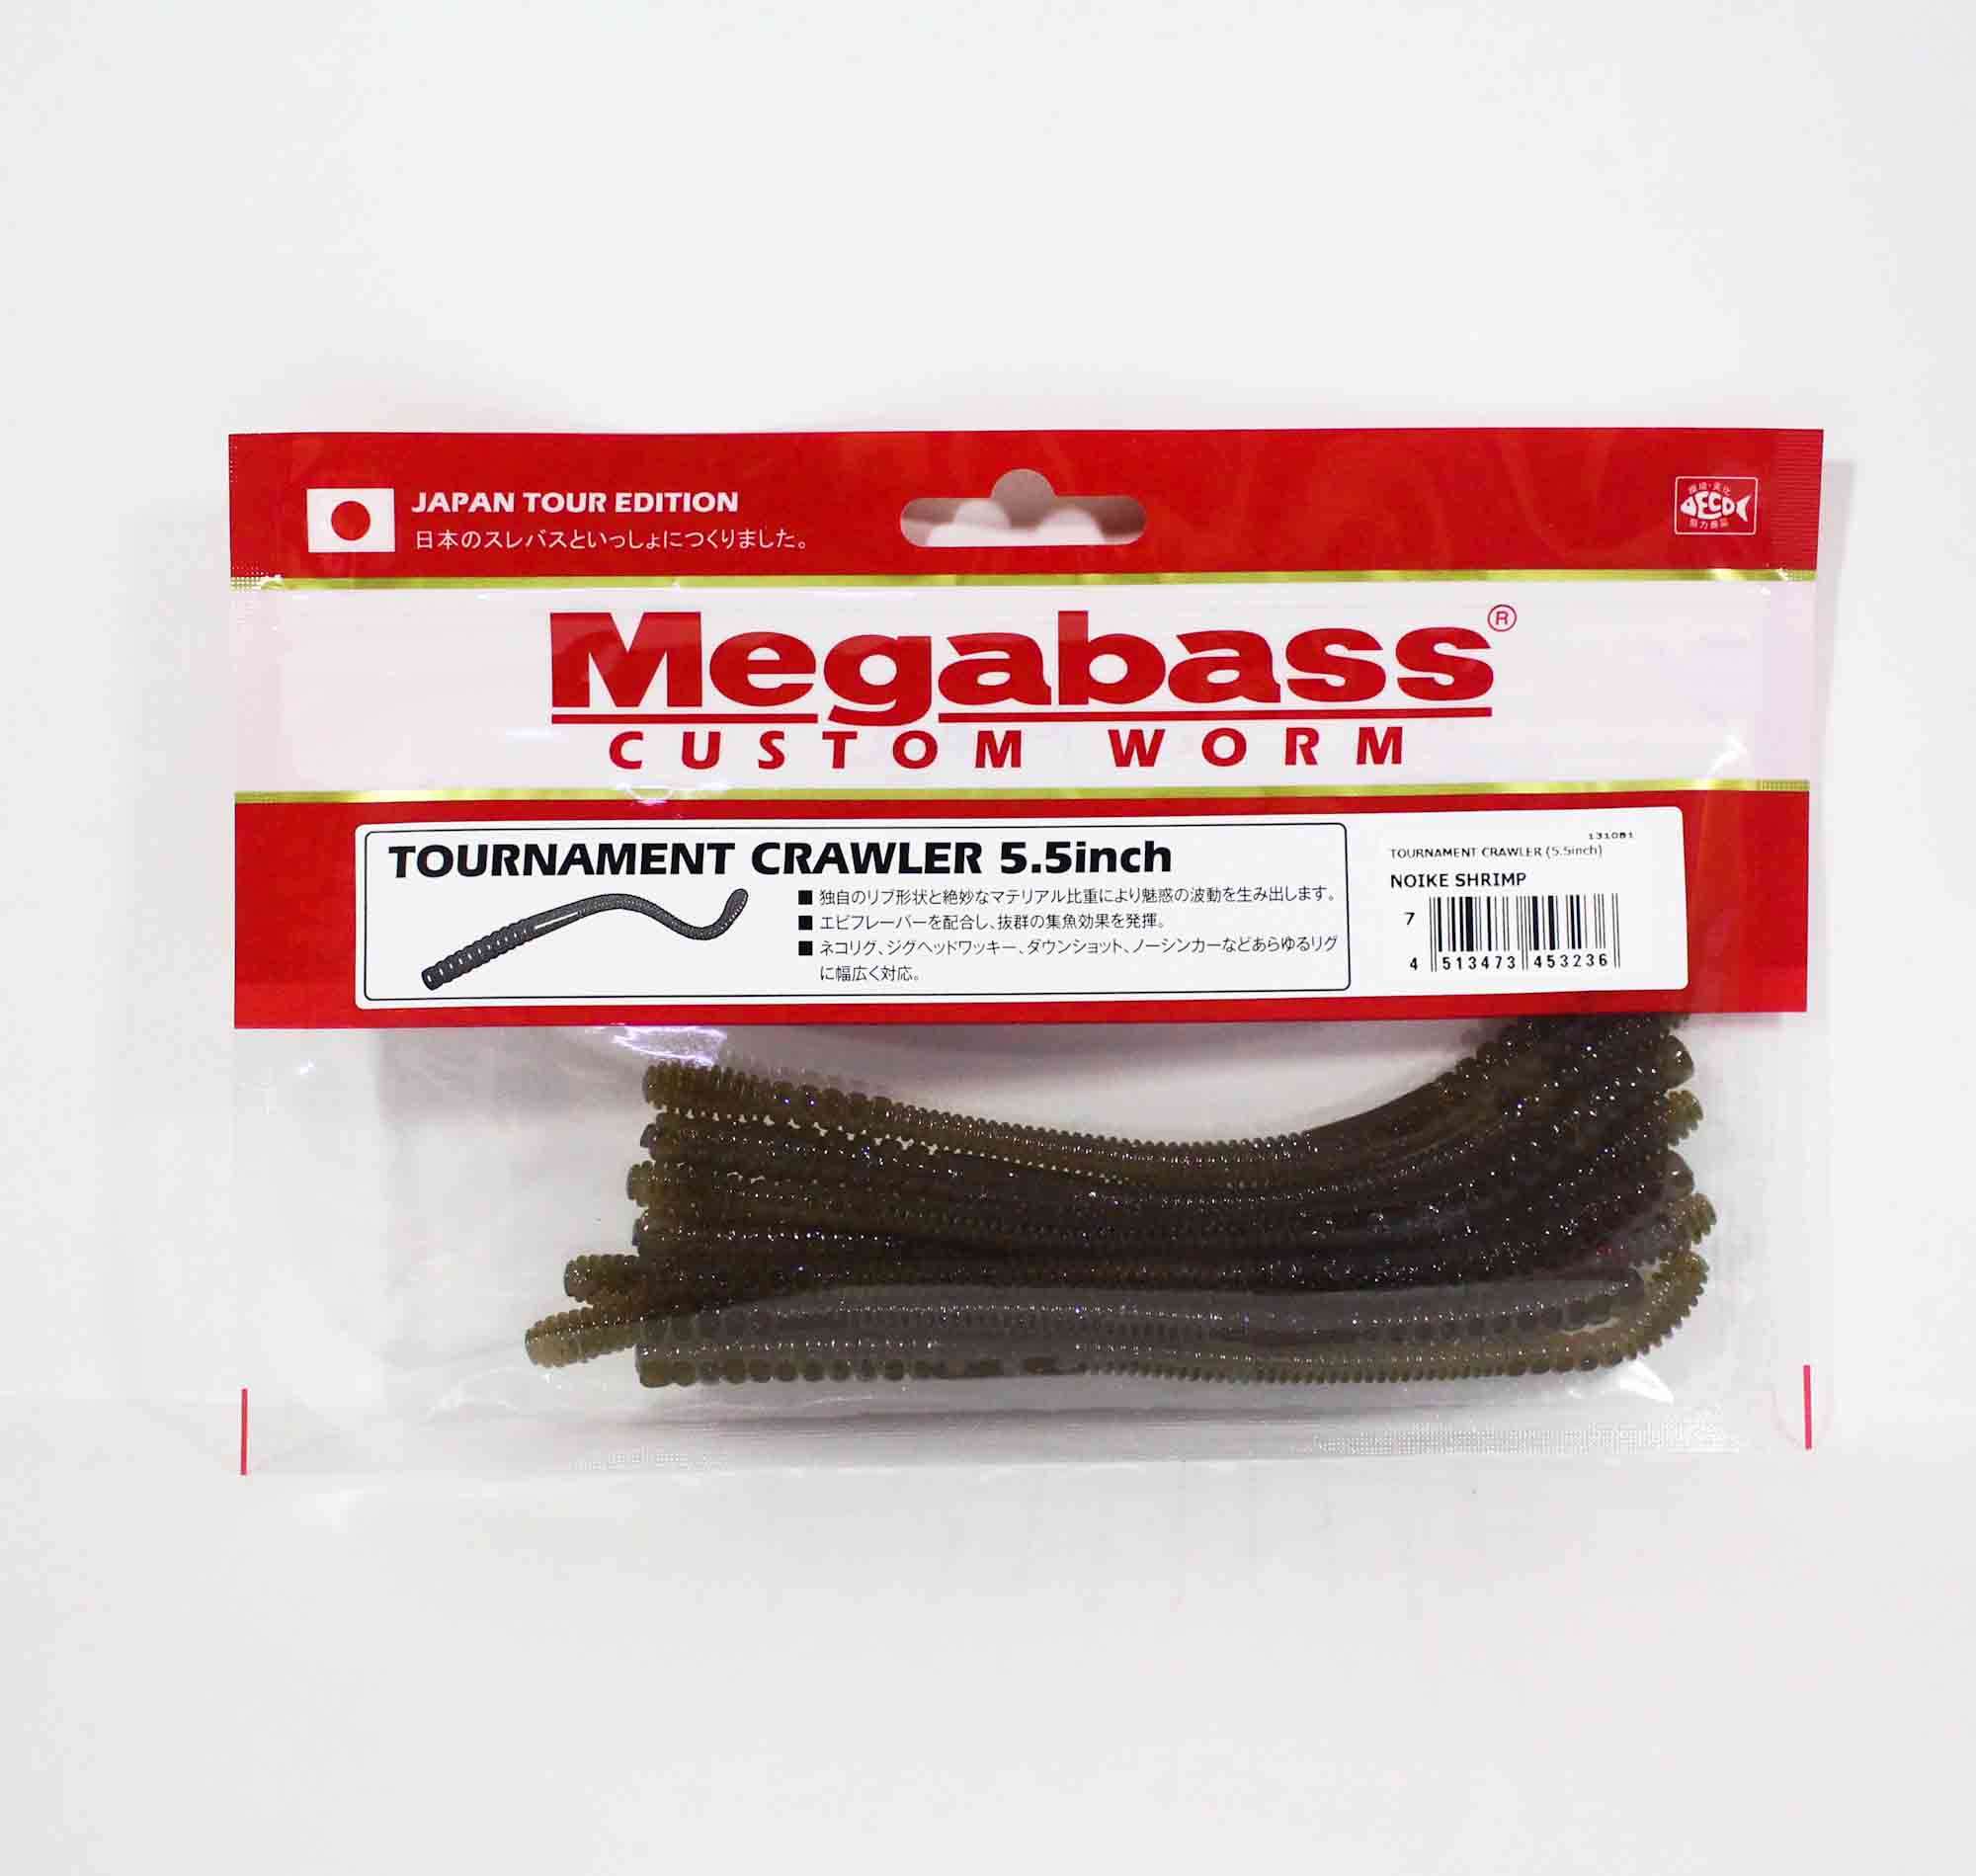 Megabass Tournament Crawler 5.5 Inch Soft Lure Noike Shrimp (3236)